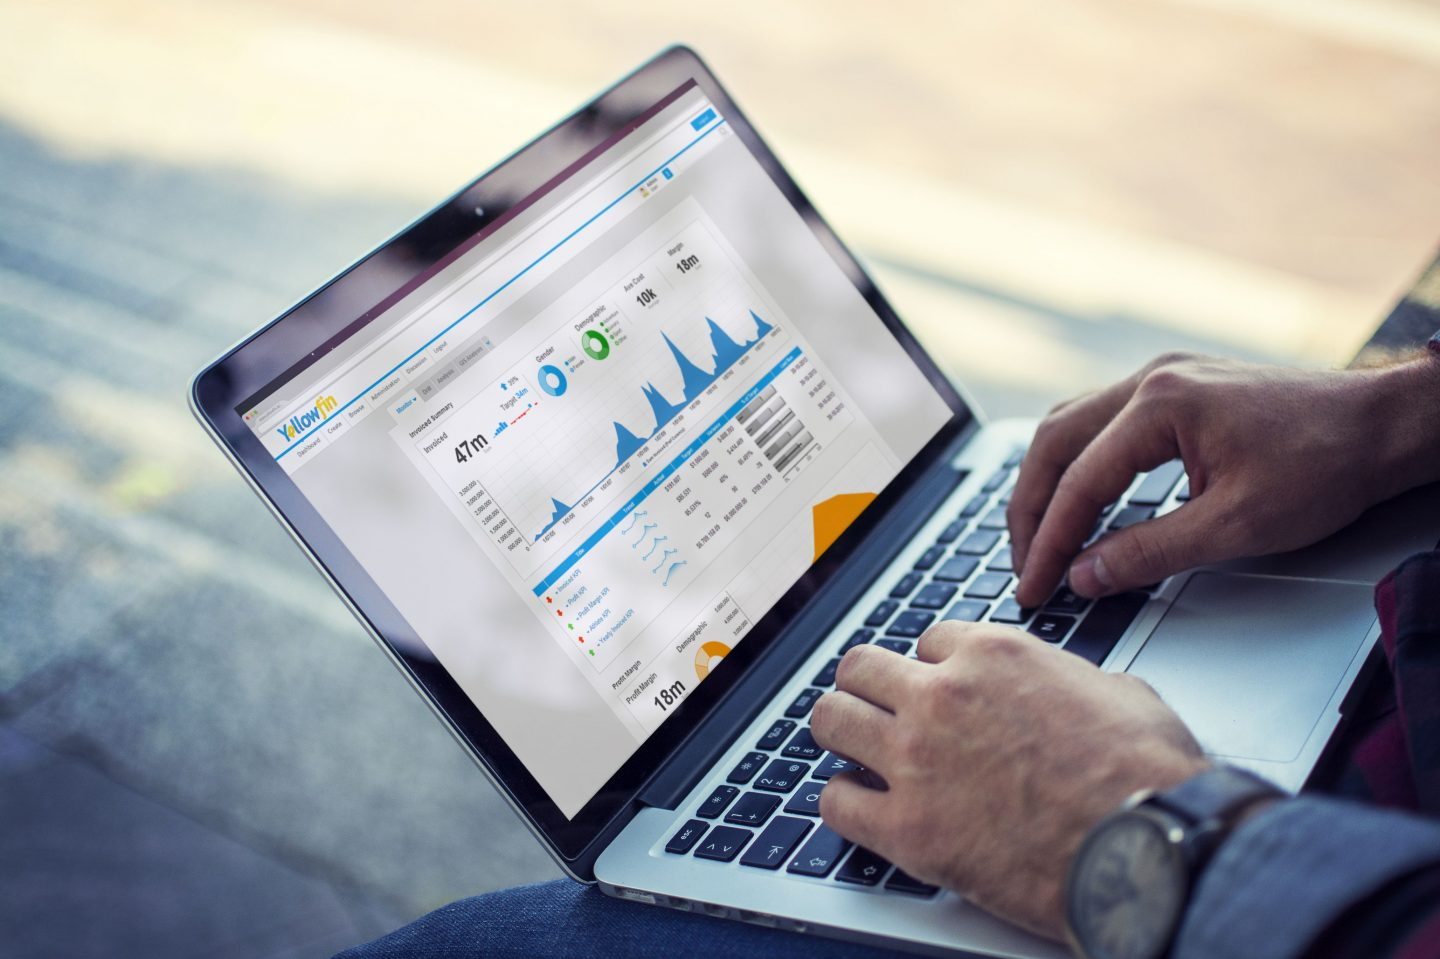 Intelligent BI: What is Business Intelligence and why do I need it?